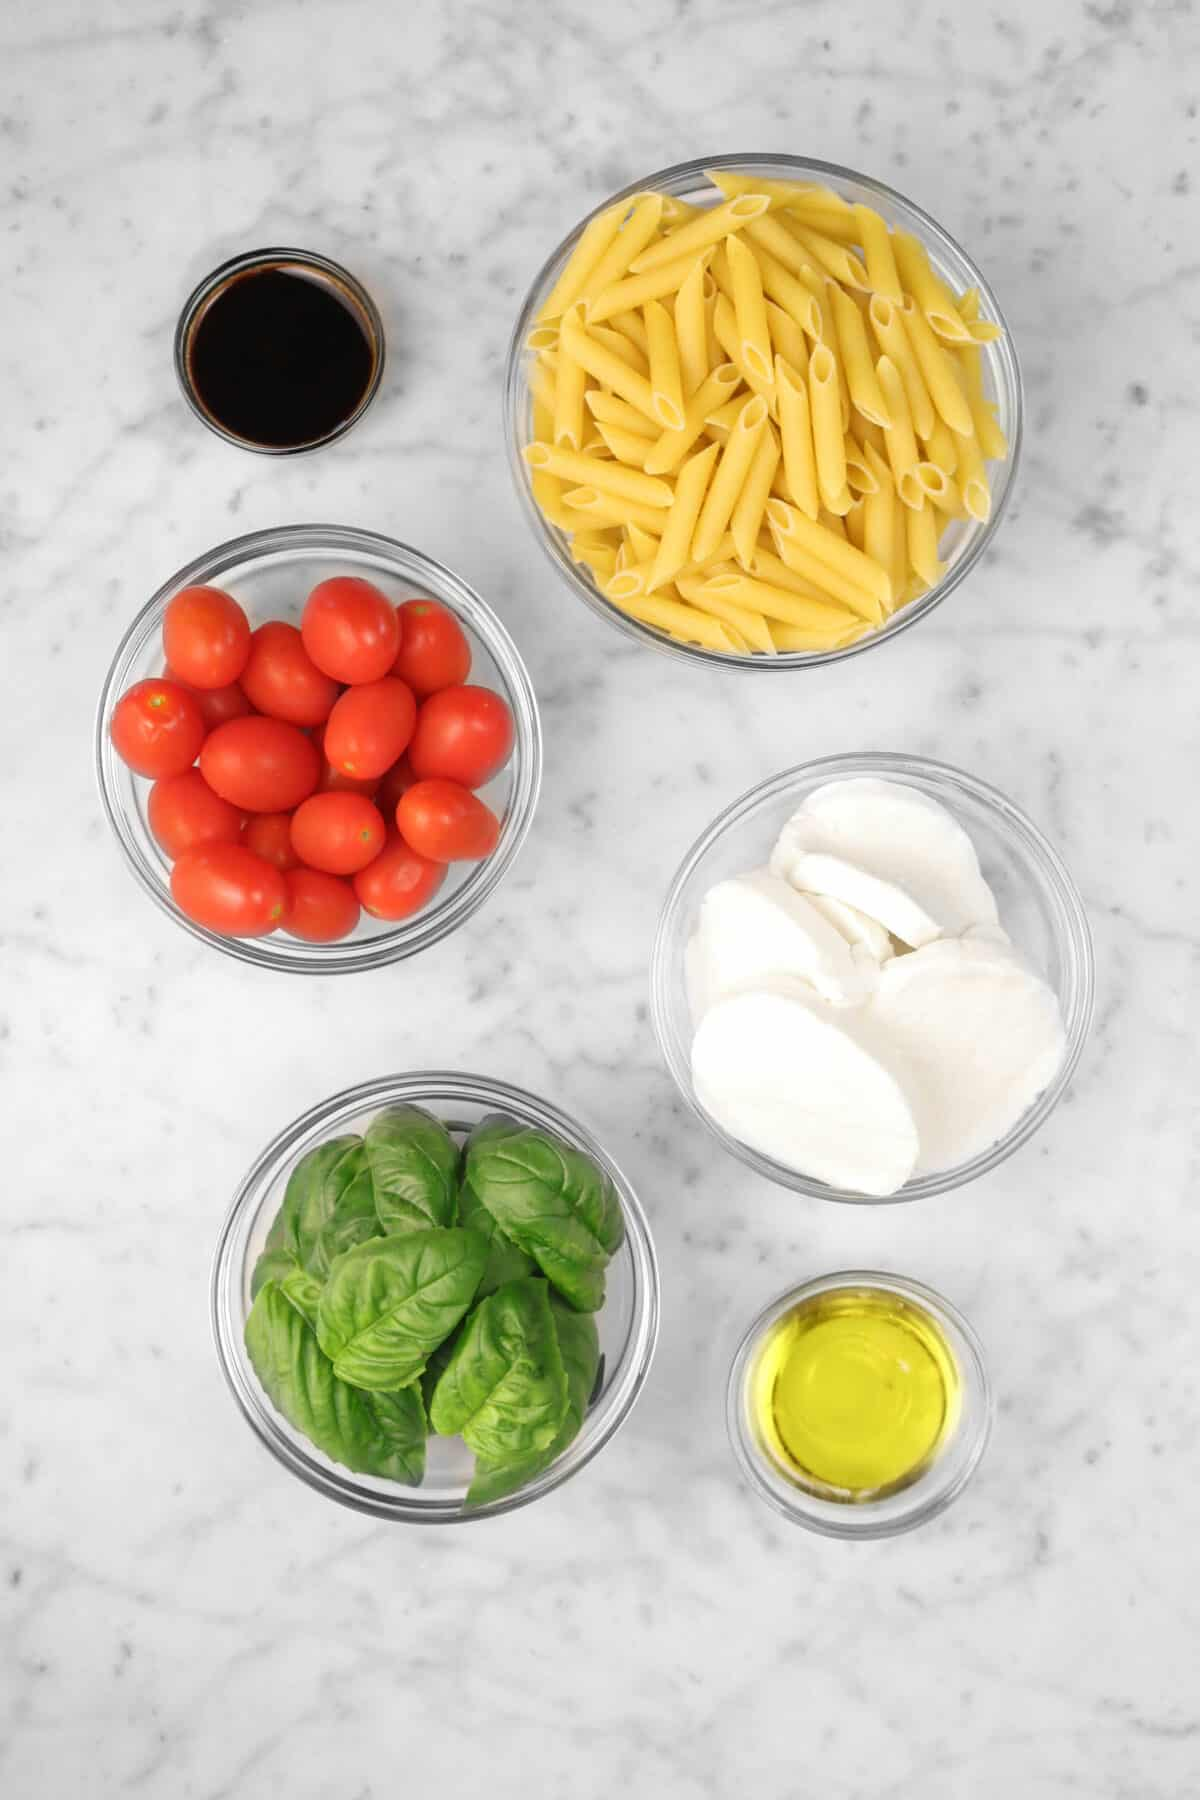 ingredients for caprese pasta salad on a marble counter